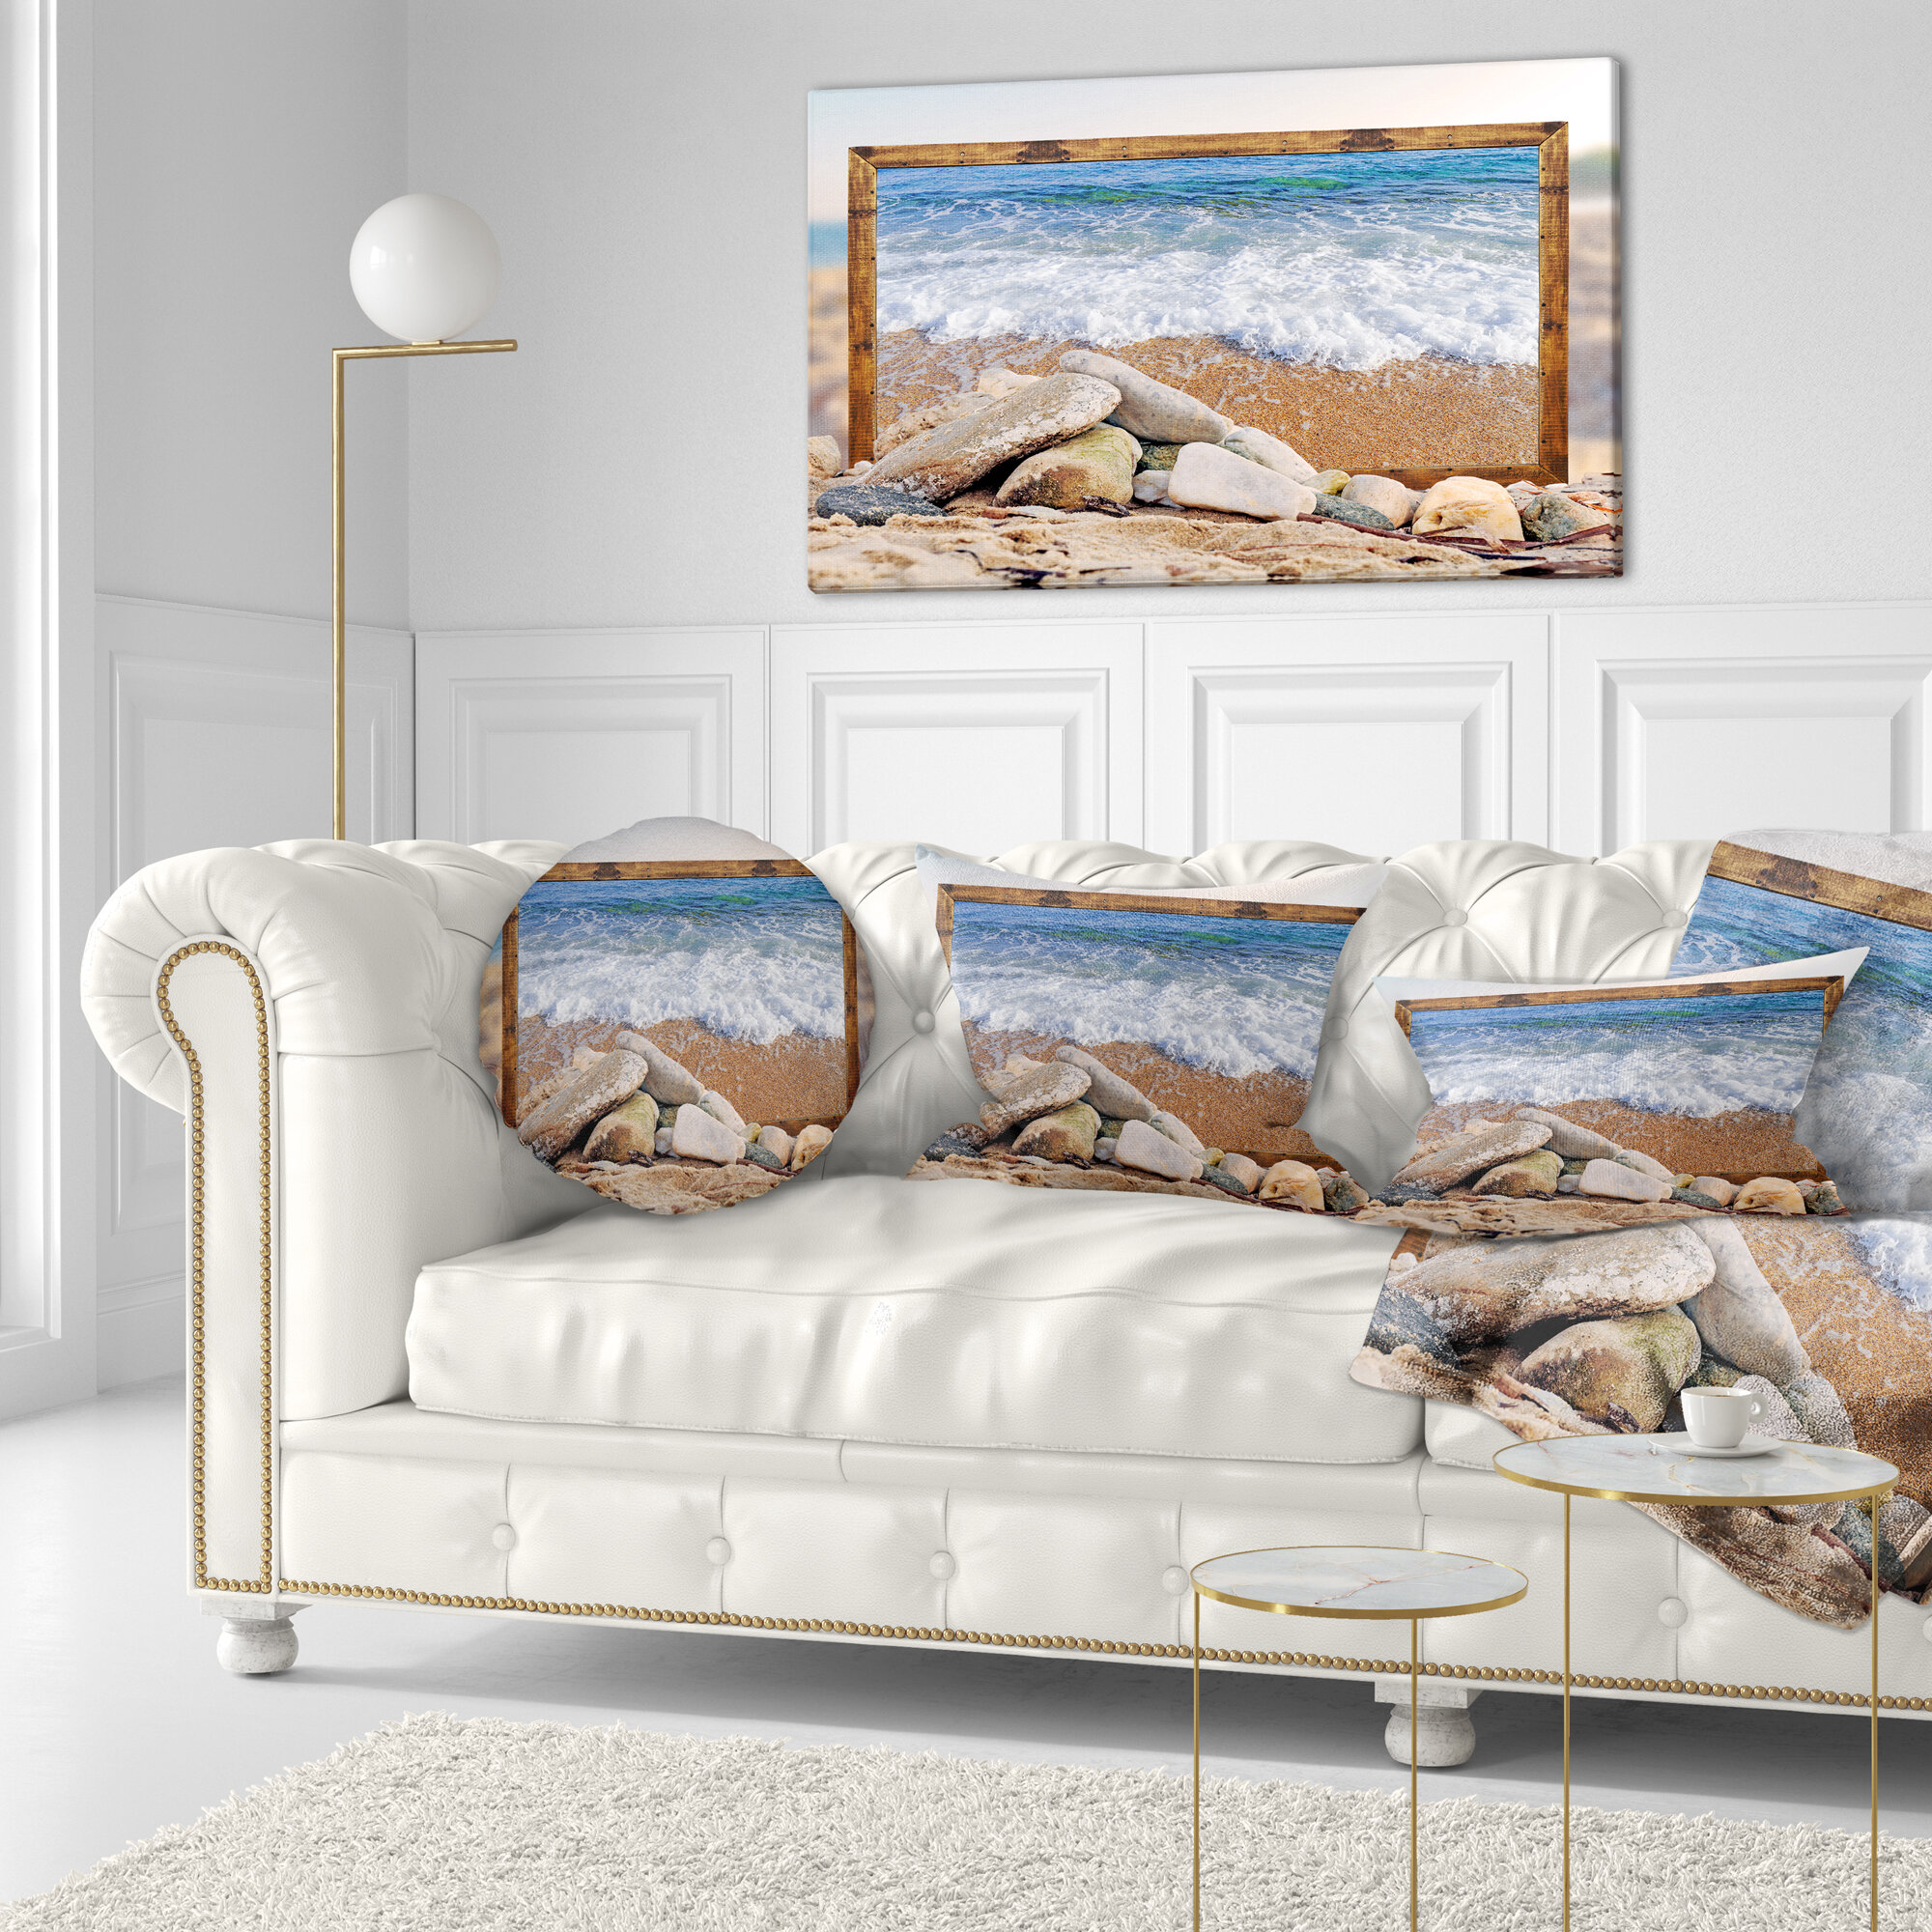 East Urban Home Seashore Framed Effect Waves And Rocks Throw